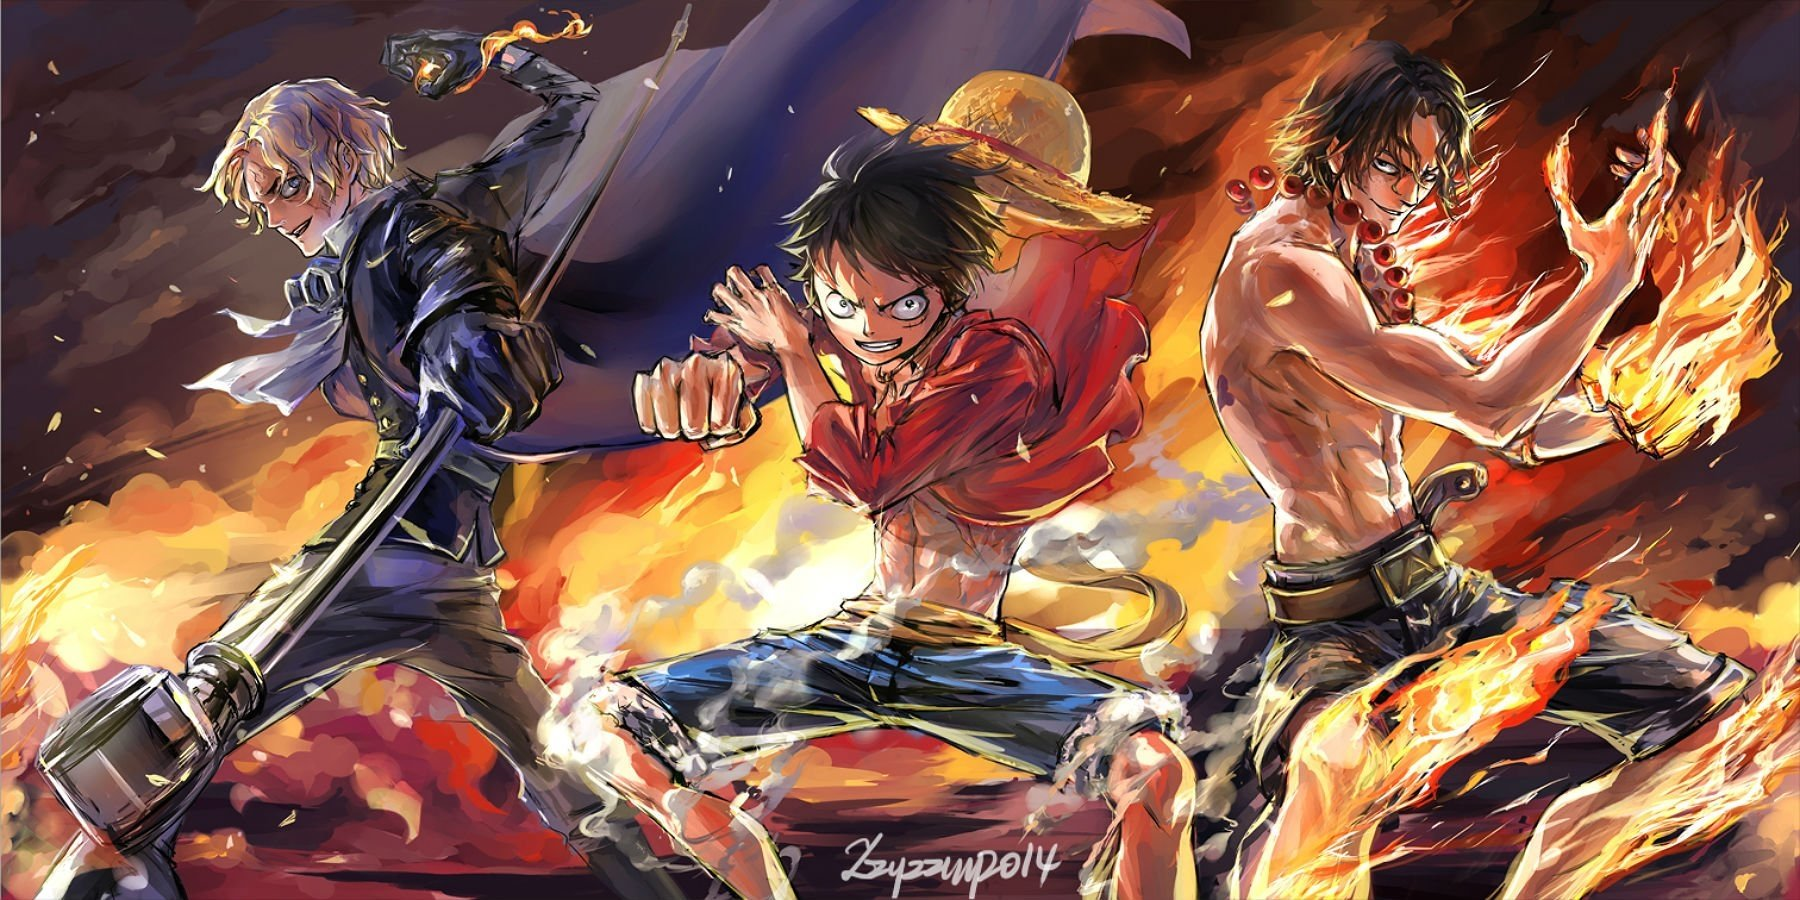 2337 One Piece Hd Wallpapers Background Images Wallpaper